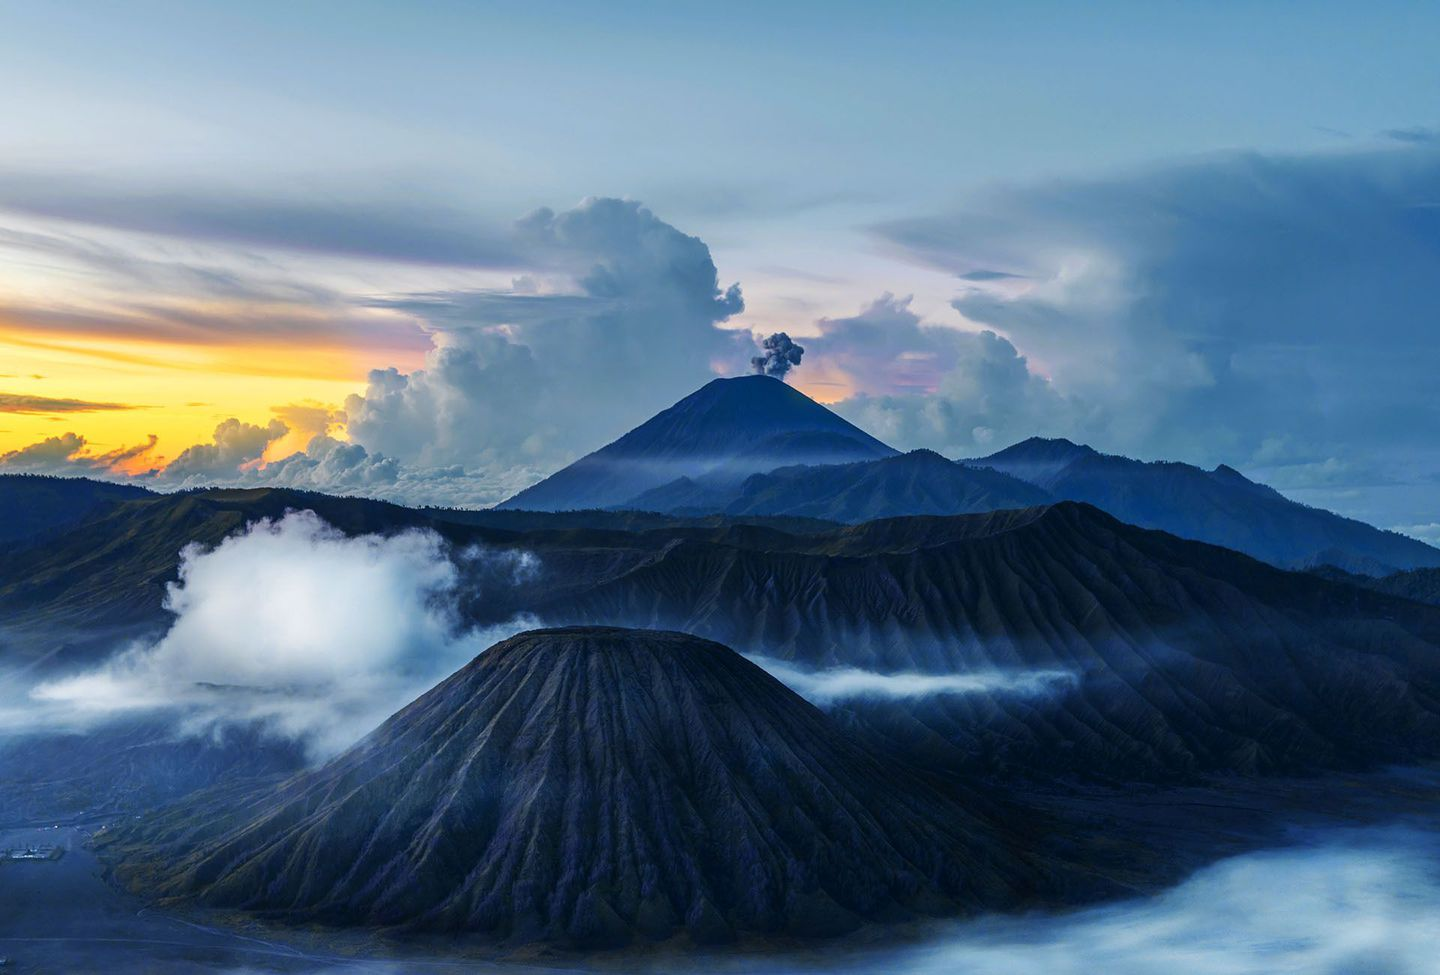 Indonesia%20surabaya%20mt%20bromo%20by%20pradeep%20raja